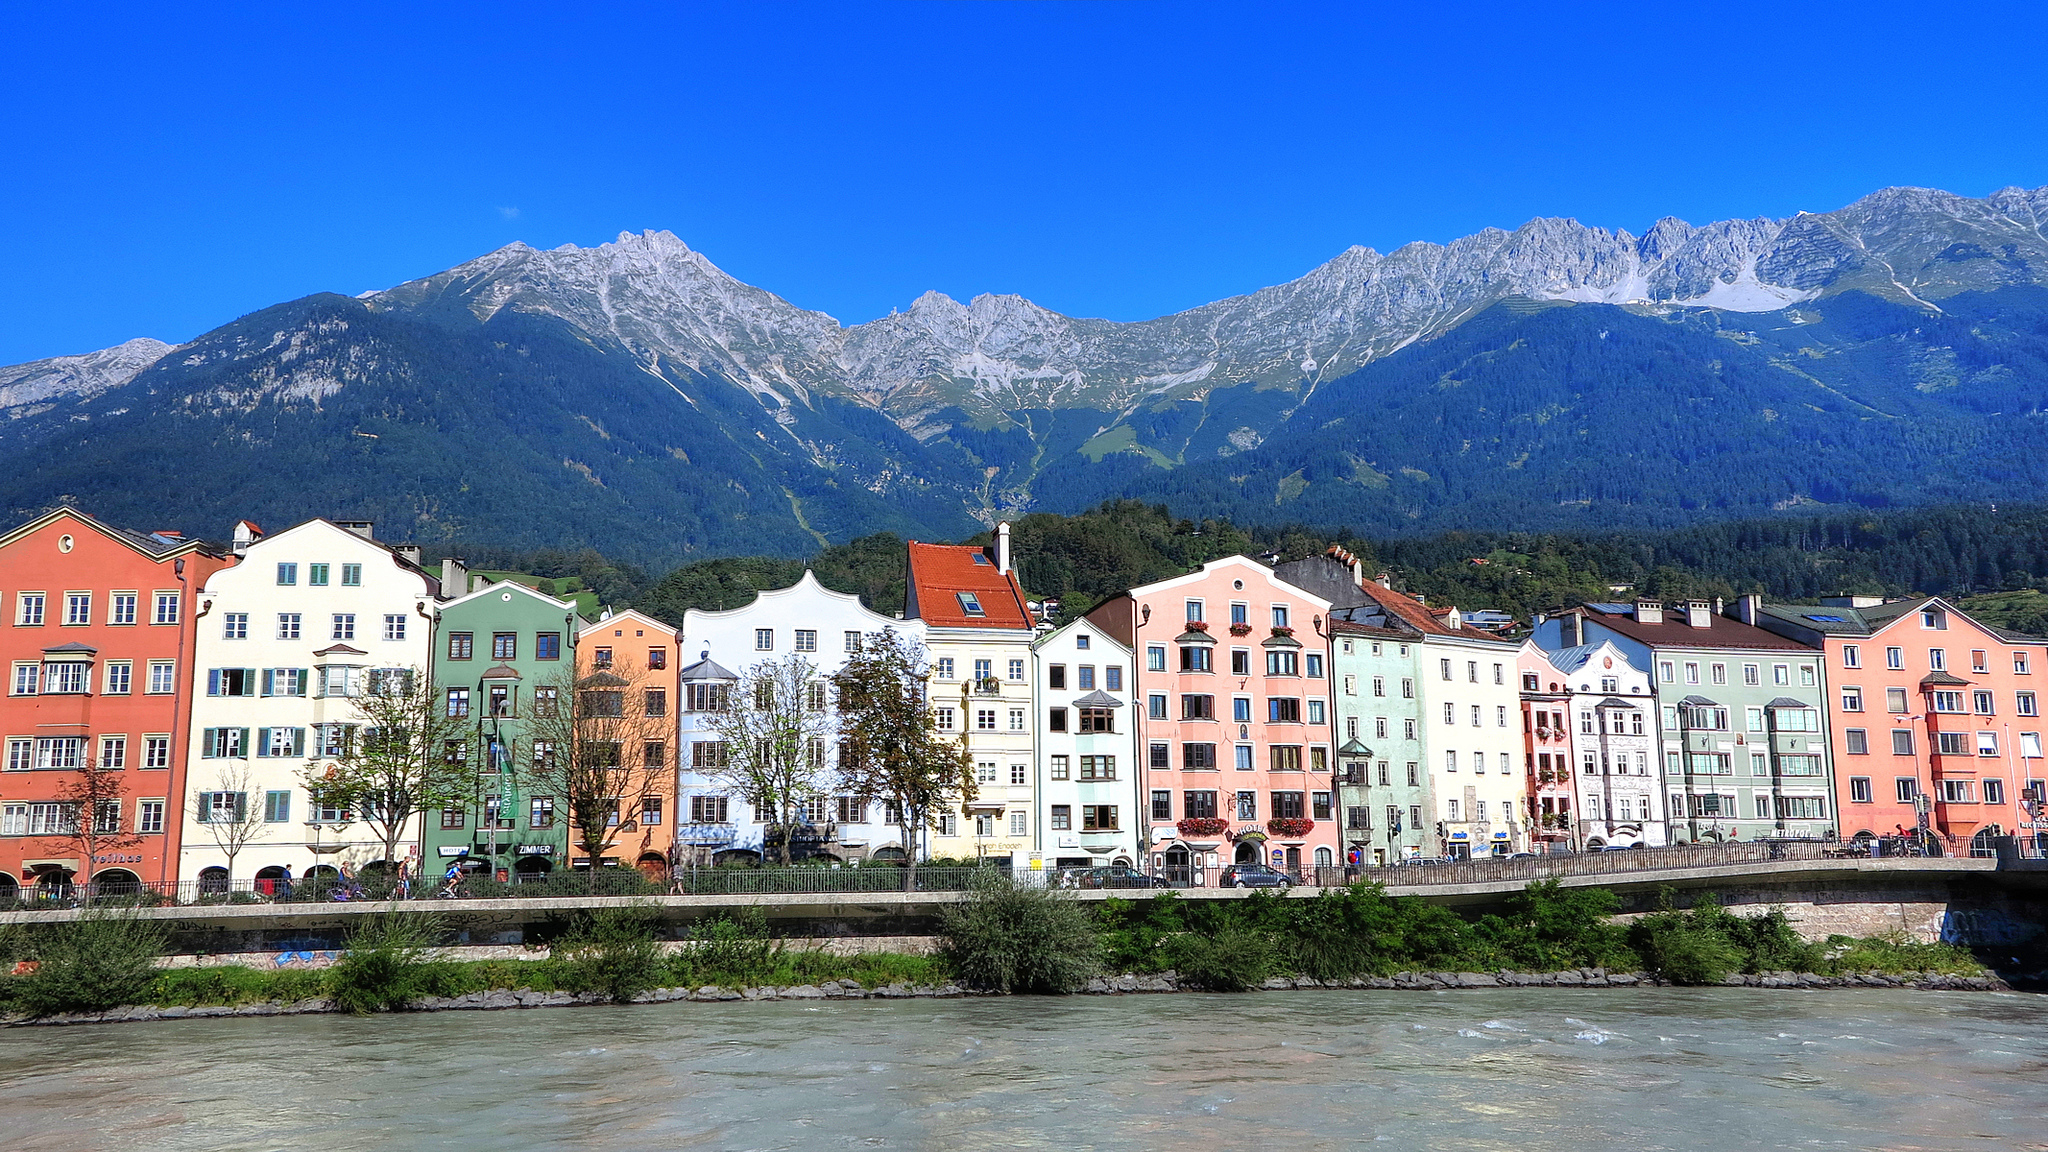 The 10 Most Beautiful Towns in Austria